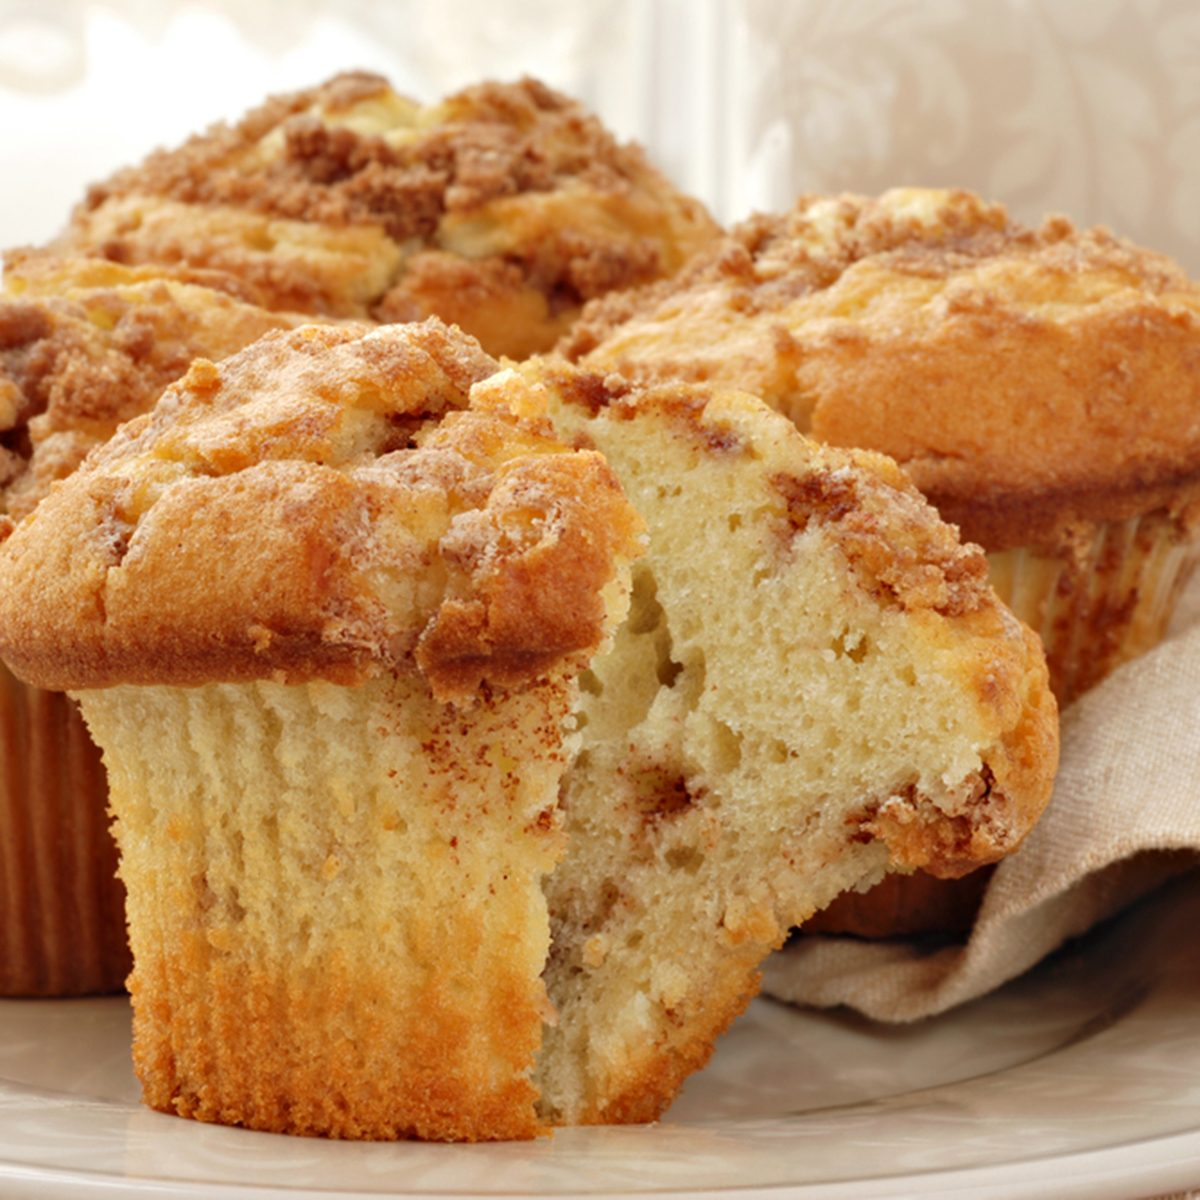 Freshly baked cinnamon muffins with sunlit window in background.